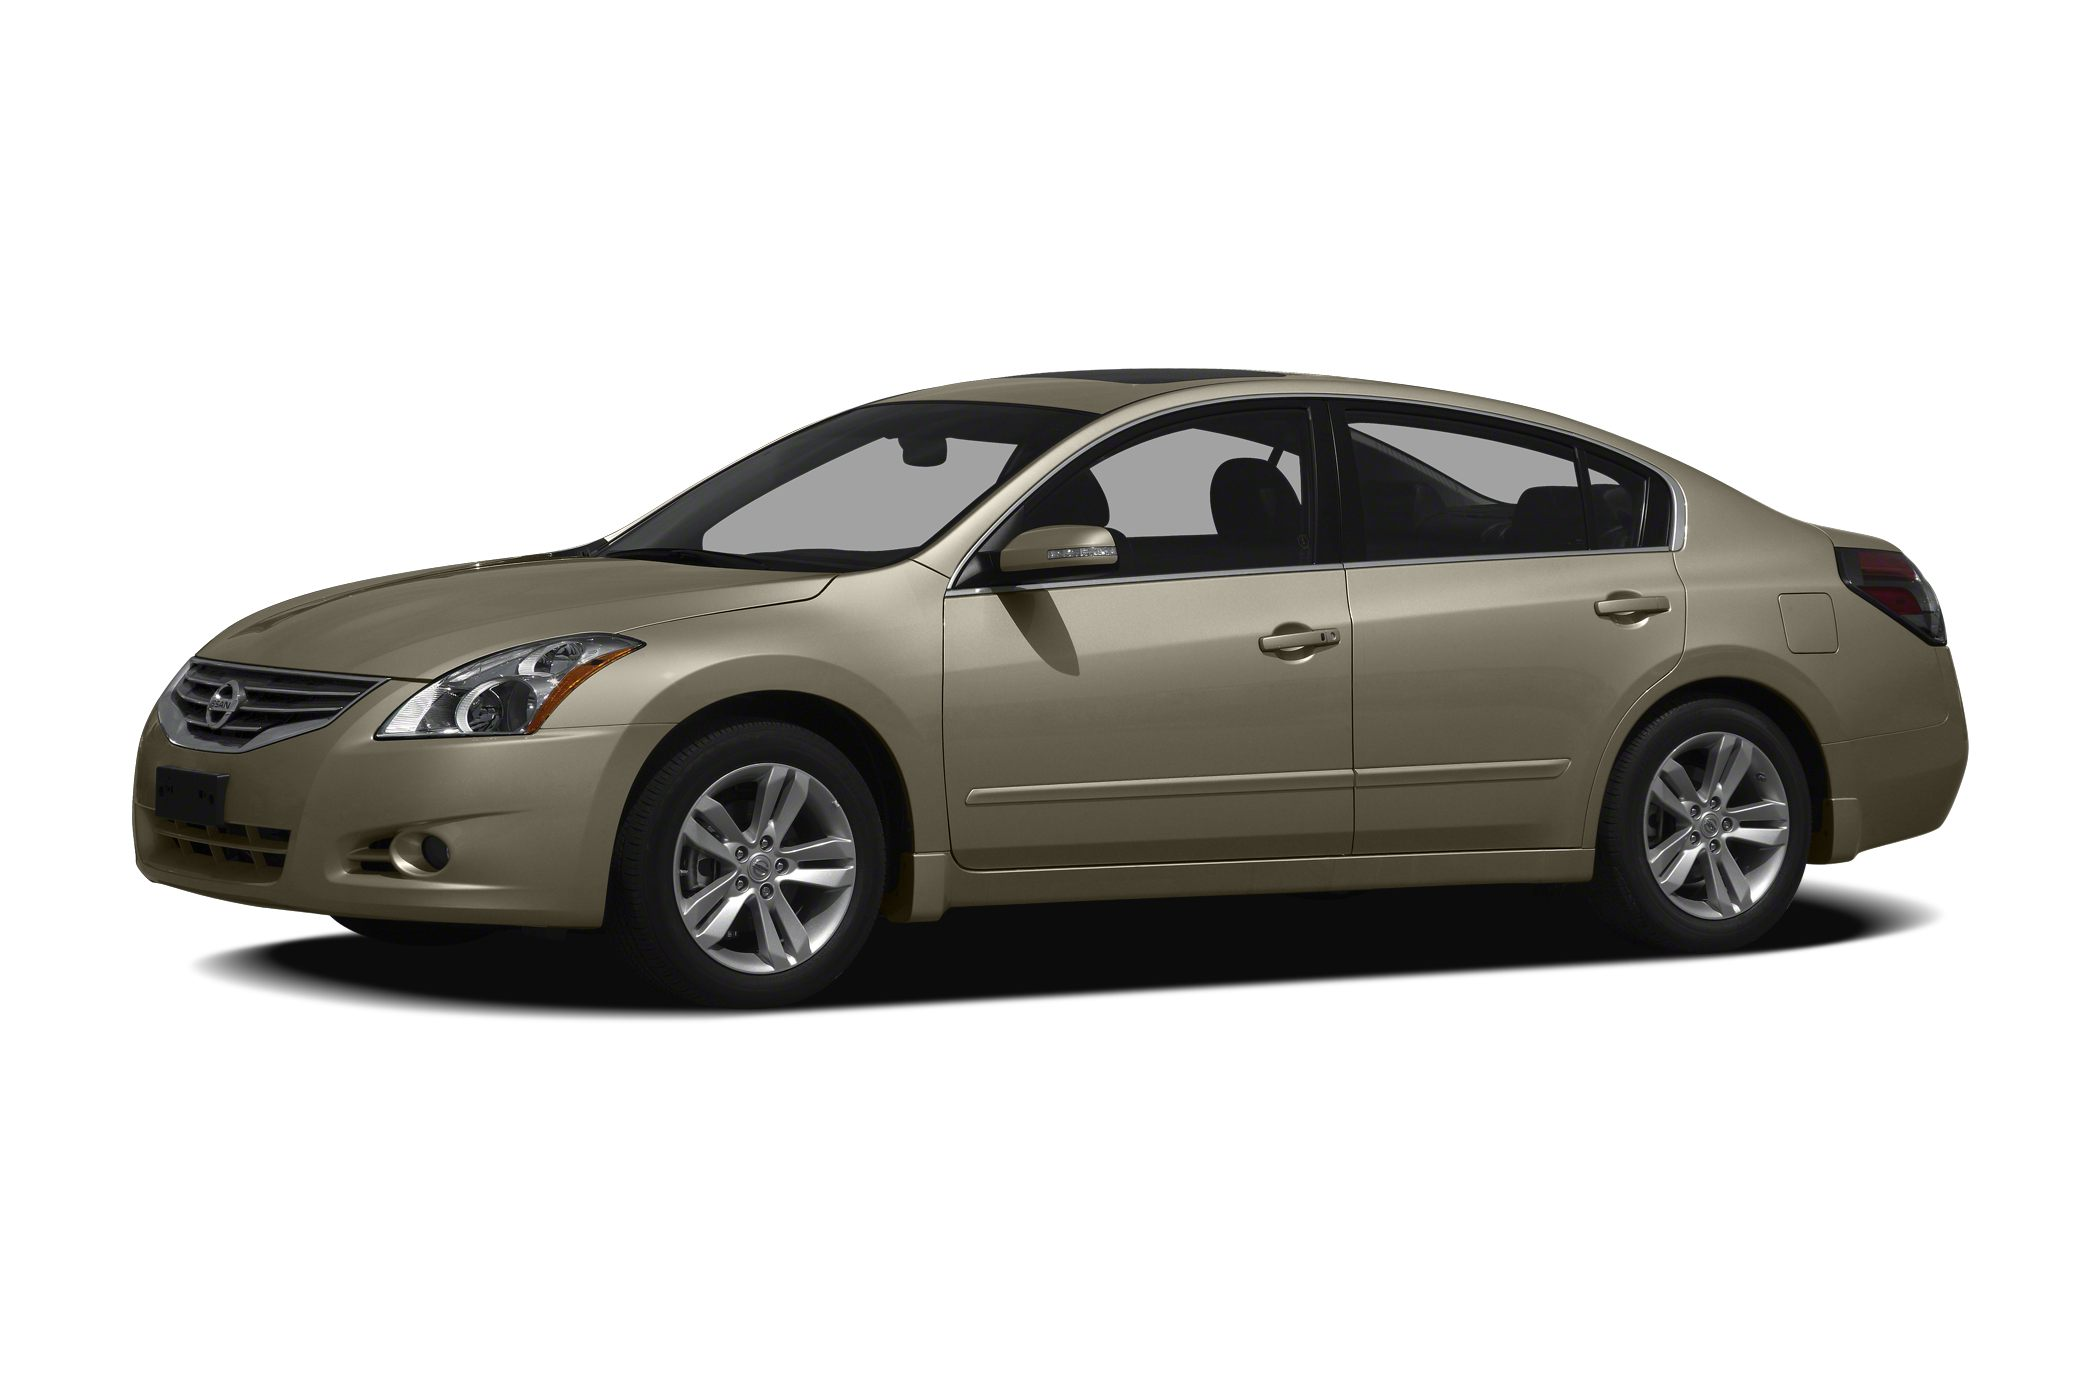 2012 Nissan Altima 25 clean NON-SMOKER very well kept vehicle AUX Input alloys ABStraction contr